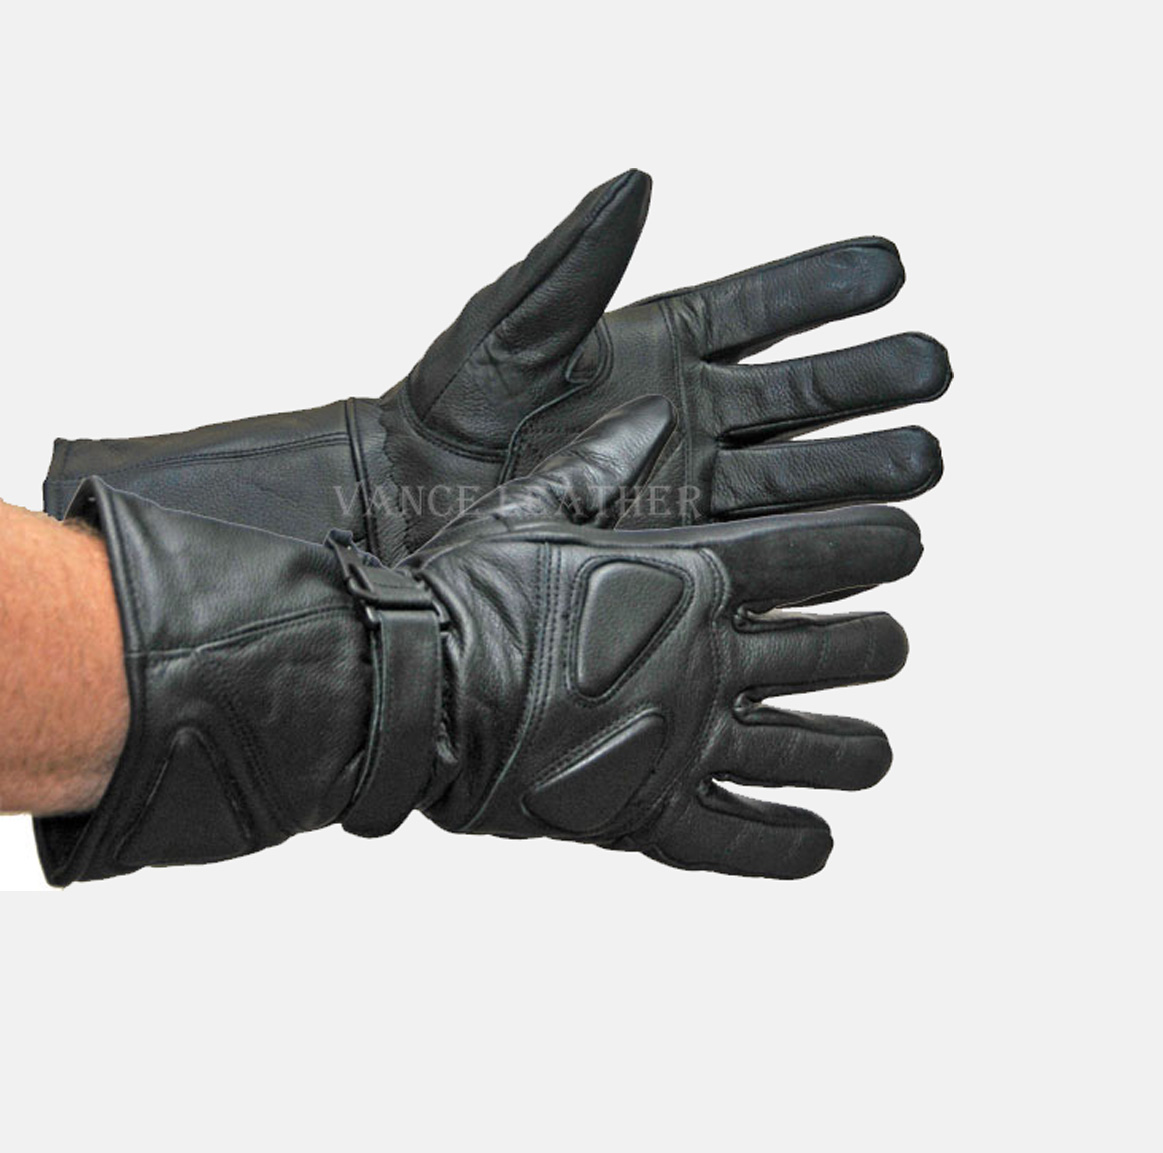 Insulated leather motorcycle gloves - Insulated Leather Motorcycle Gloves